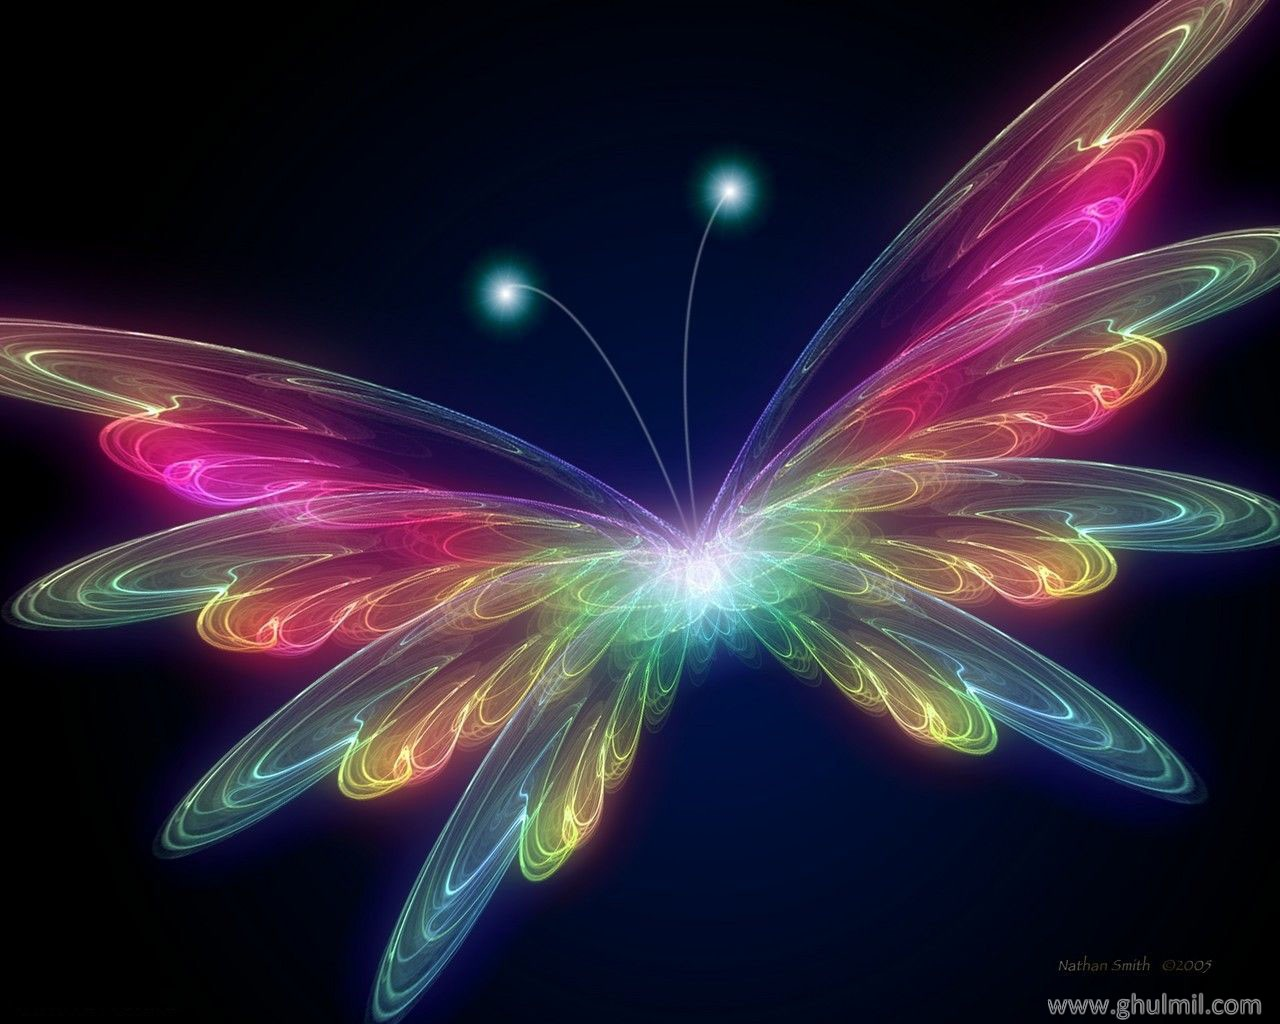 http://4.bp.blogspot.com/-OWeB1jNmAZ8/ToxKJFOnGoI/AAAAAAAAAI8/PKy9wVxC5e0/s1600/very-beautiful-3d-hd-hq-colorful-butterfly-wallpaper.jpg